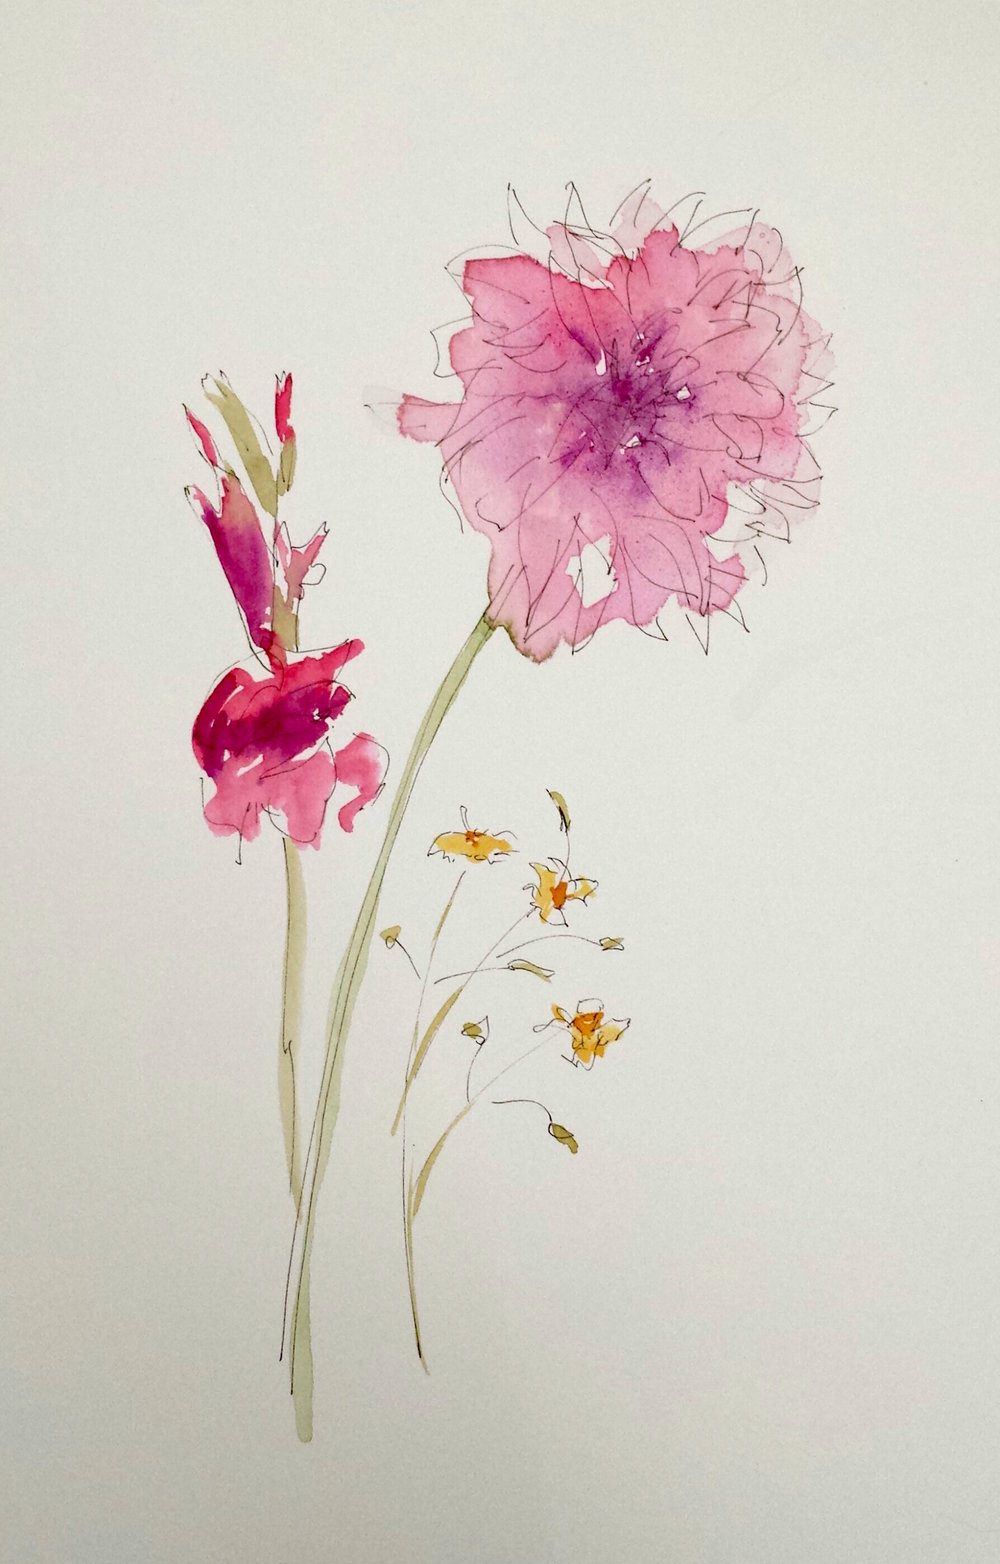 Pink Flowers, 2016, pen, ink, and watercolor, 10 in x 6 in.